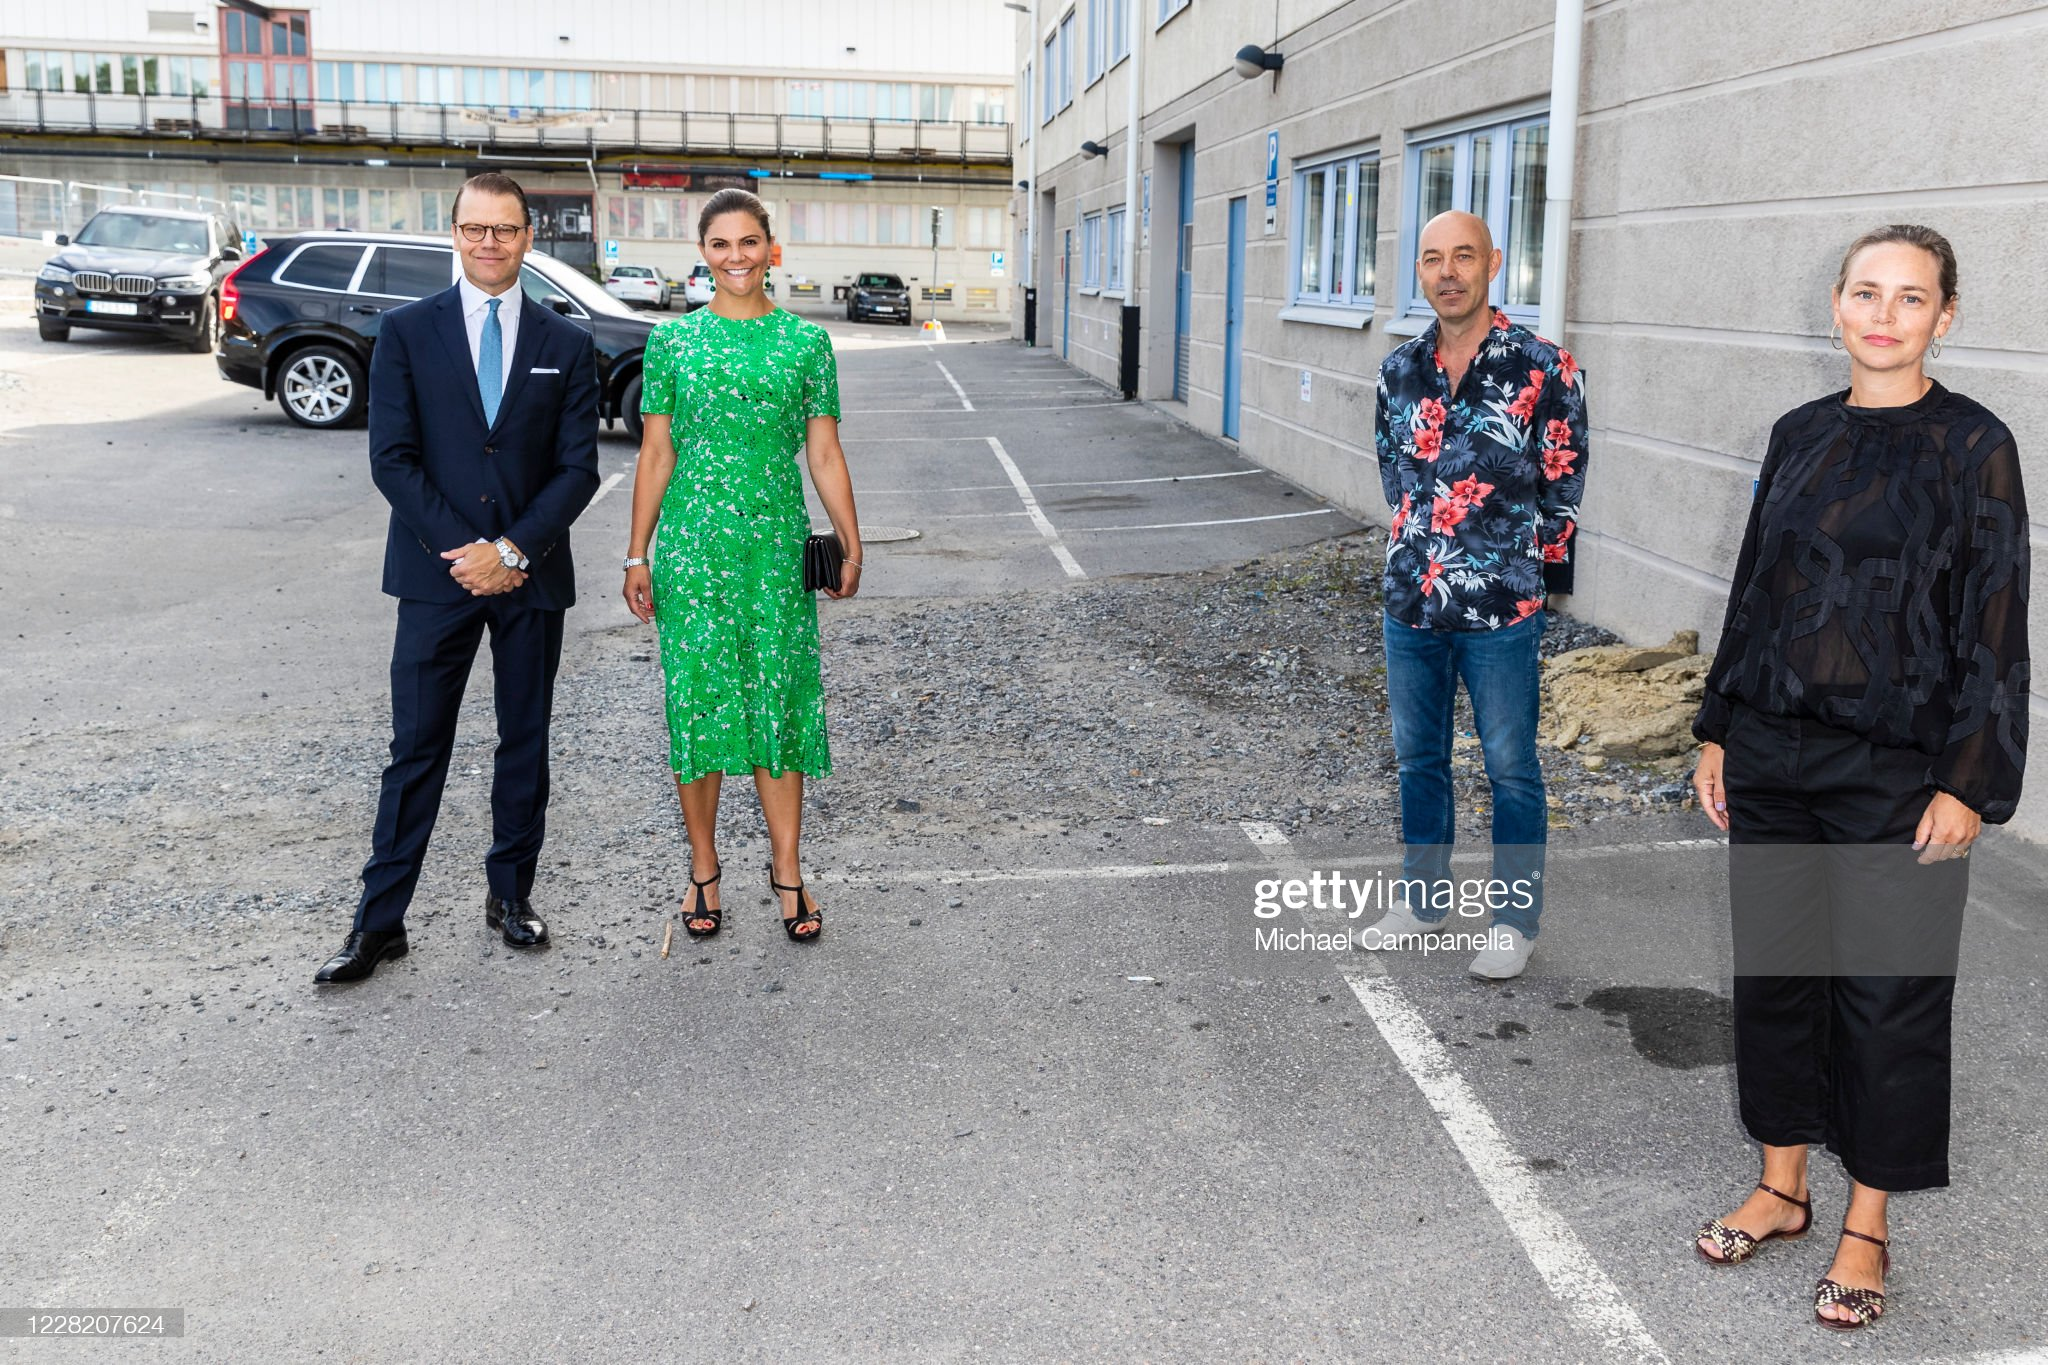 crown-princess-victoria-and-prince-daniel-of-sweden-visit-the-artist-picture-id1228207624